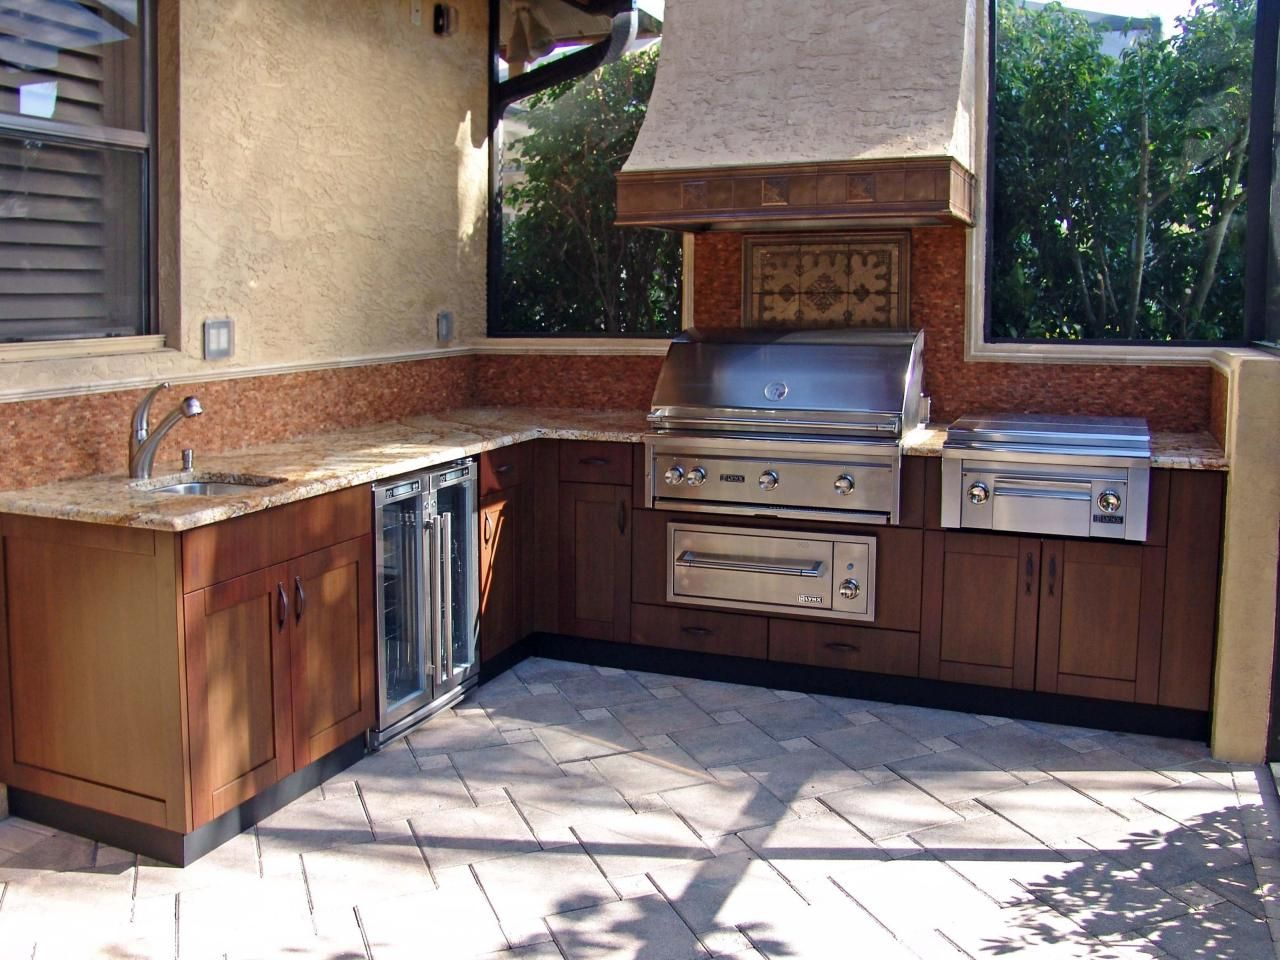 Small Outdoor Kitchen Ideas Pictures Tips Expert Advice Modular Outdoor Kitchens Outdoor Kitchen Cabinets Outdoor Kitchen Countertops